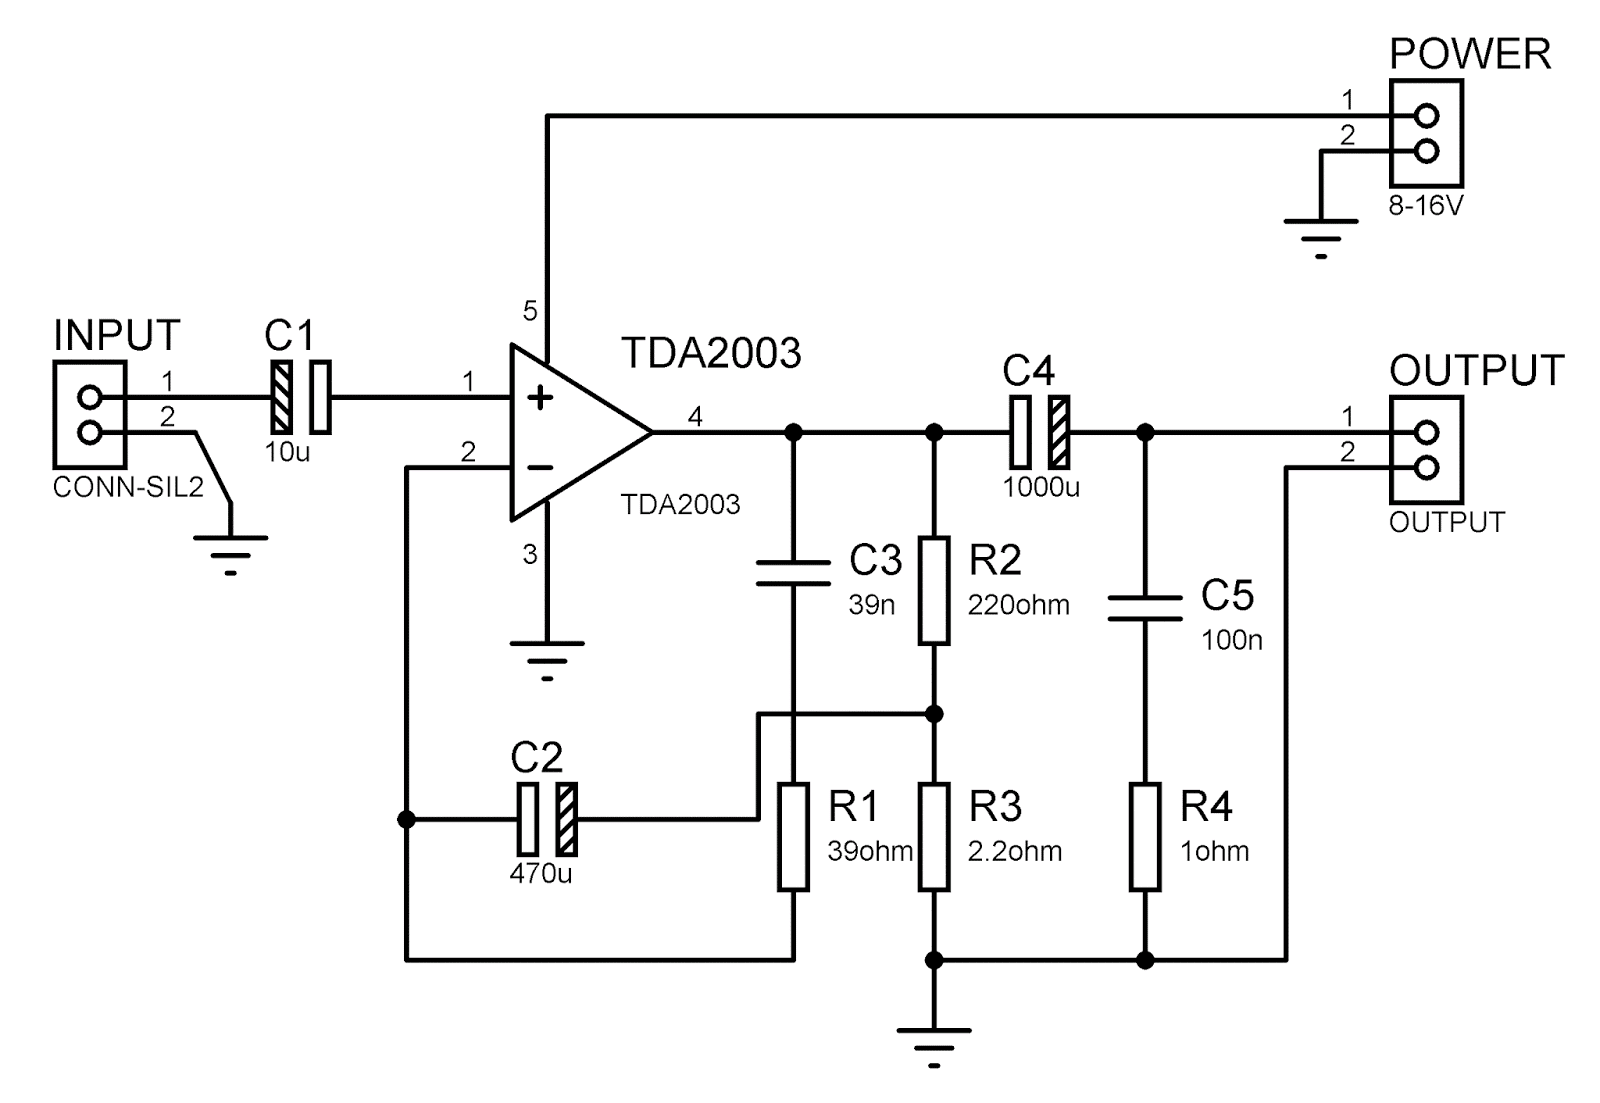 Merakit Rangkaian Elektronika Tda2003 How To Build Your Own 10watt Power Amplifier Using An Ic Tda 2003 Skema